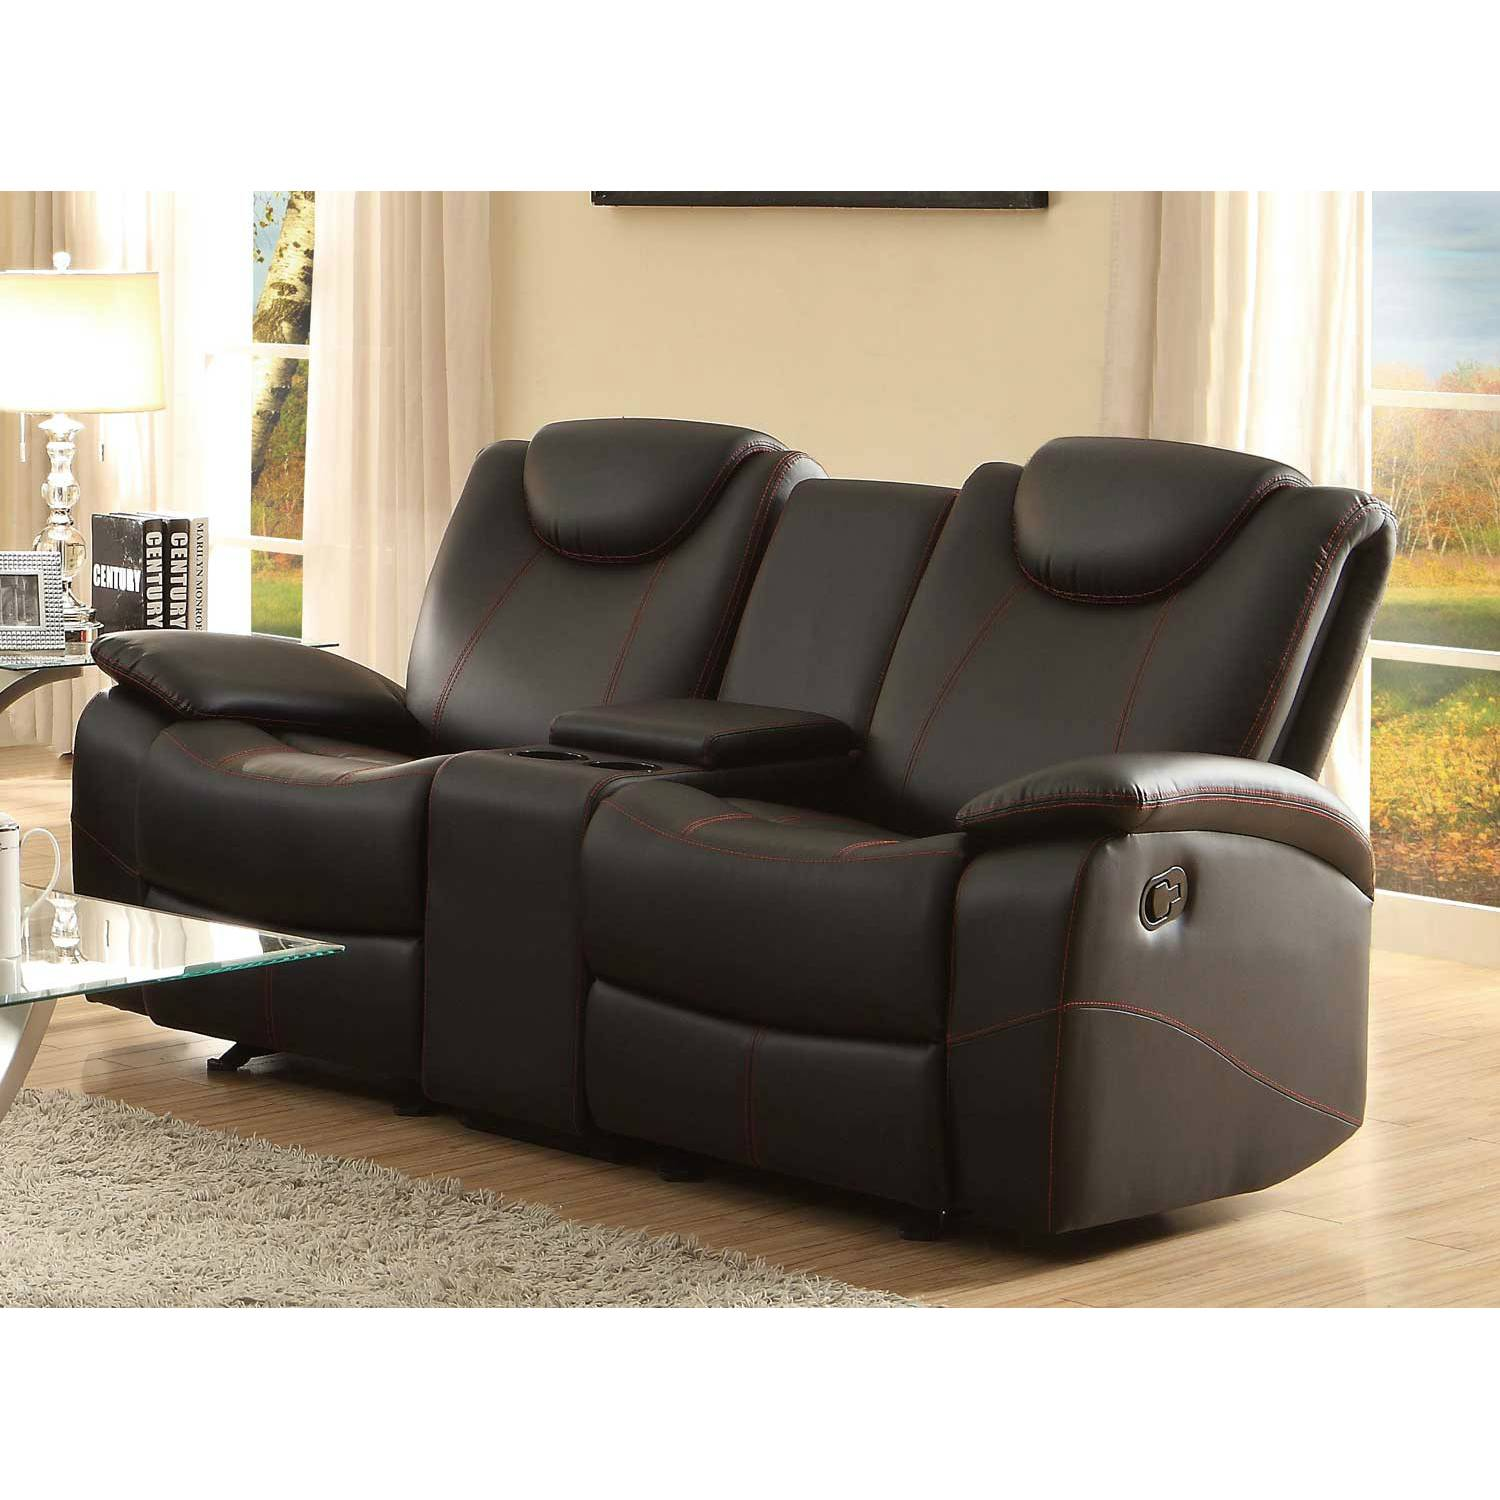 Brilliant Talbot Double Glider Reclining Love Seat With Center Console Black Bonded Leather Pabps2019 Chair Design Images Pabps2019Com